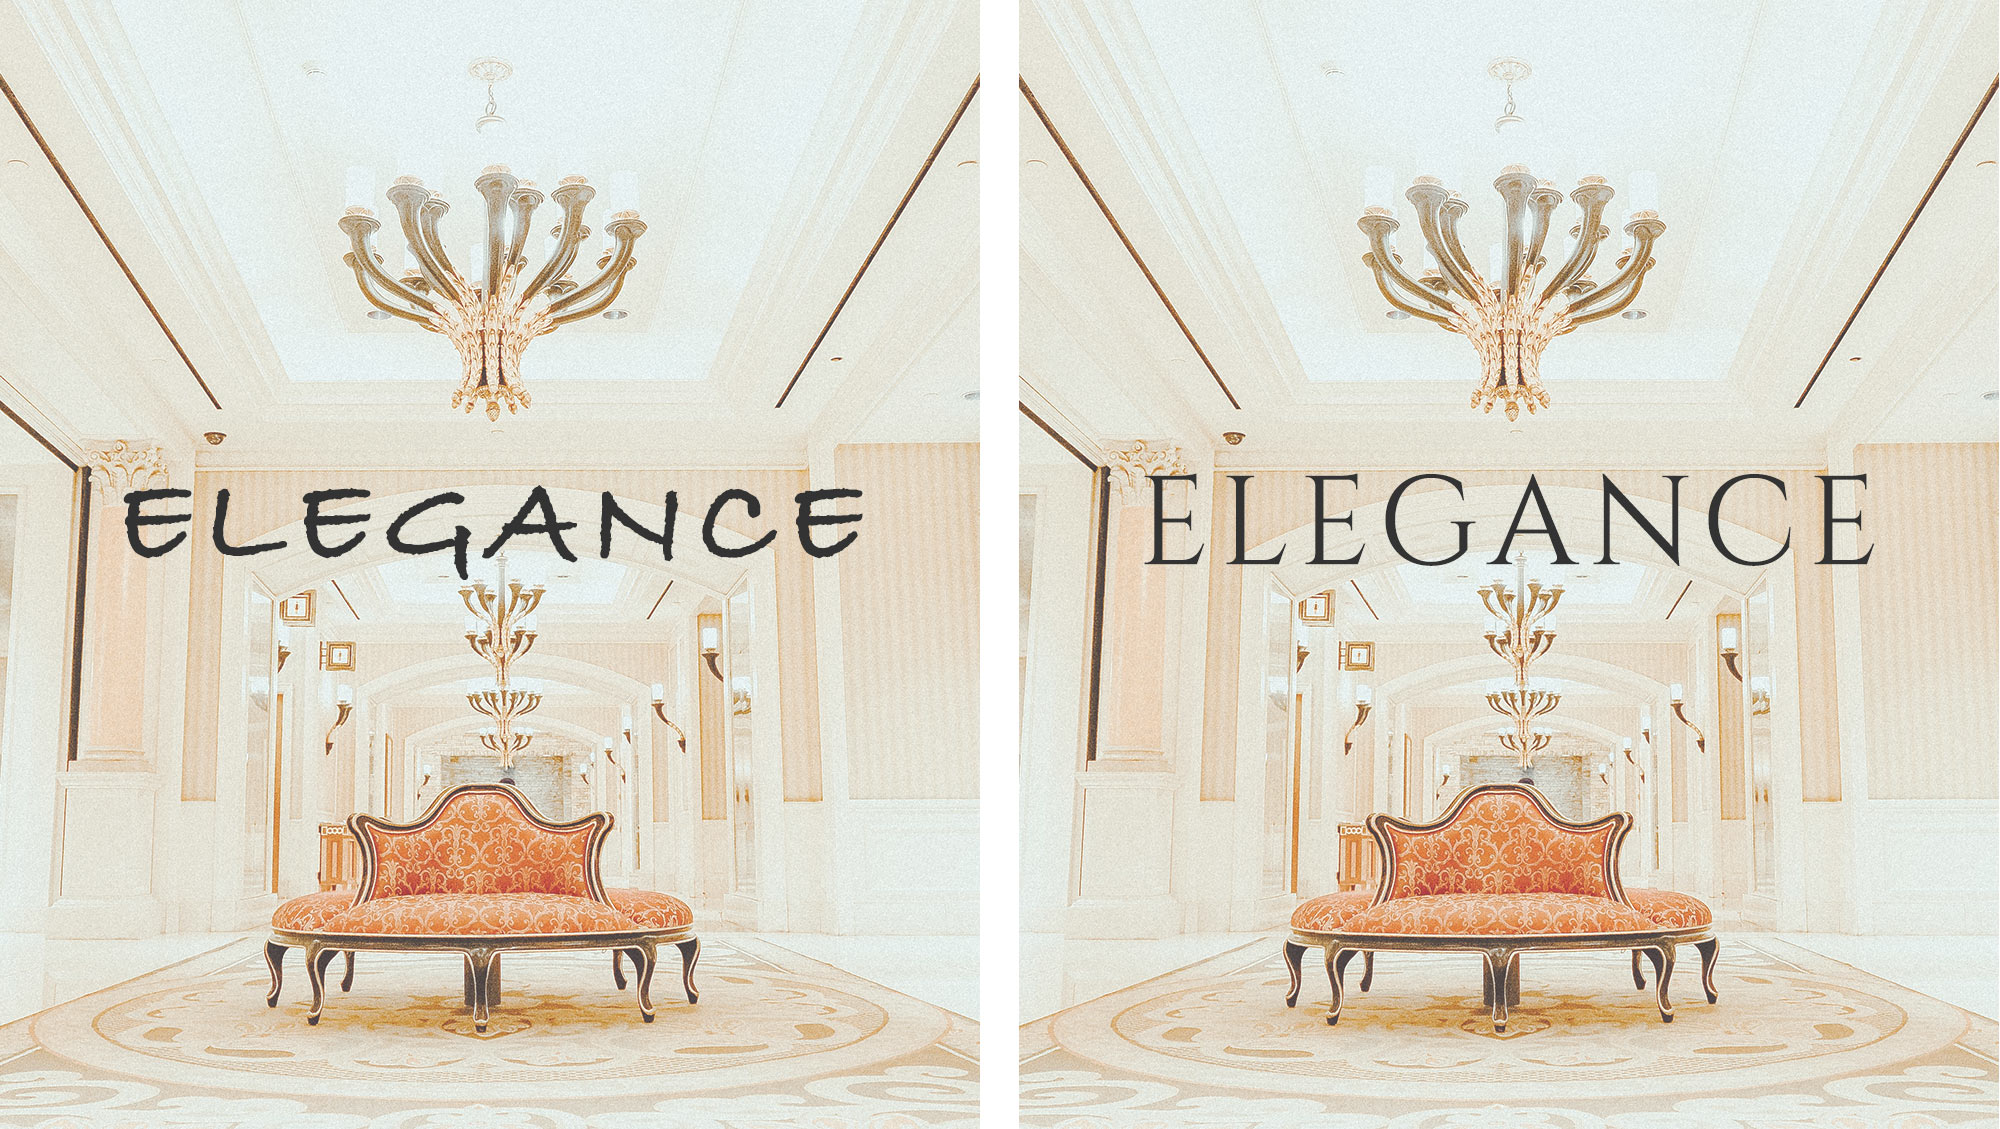 Example shows two different font styles on luxury image